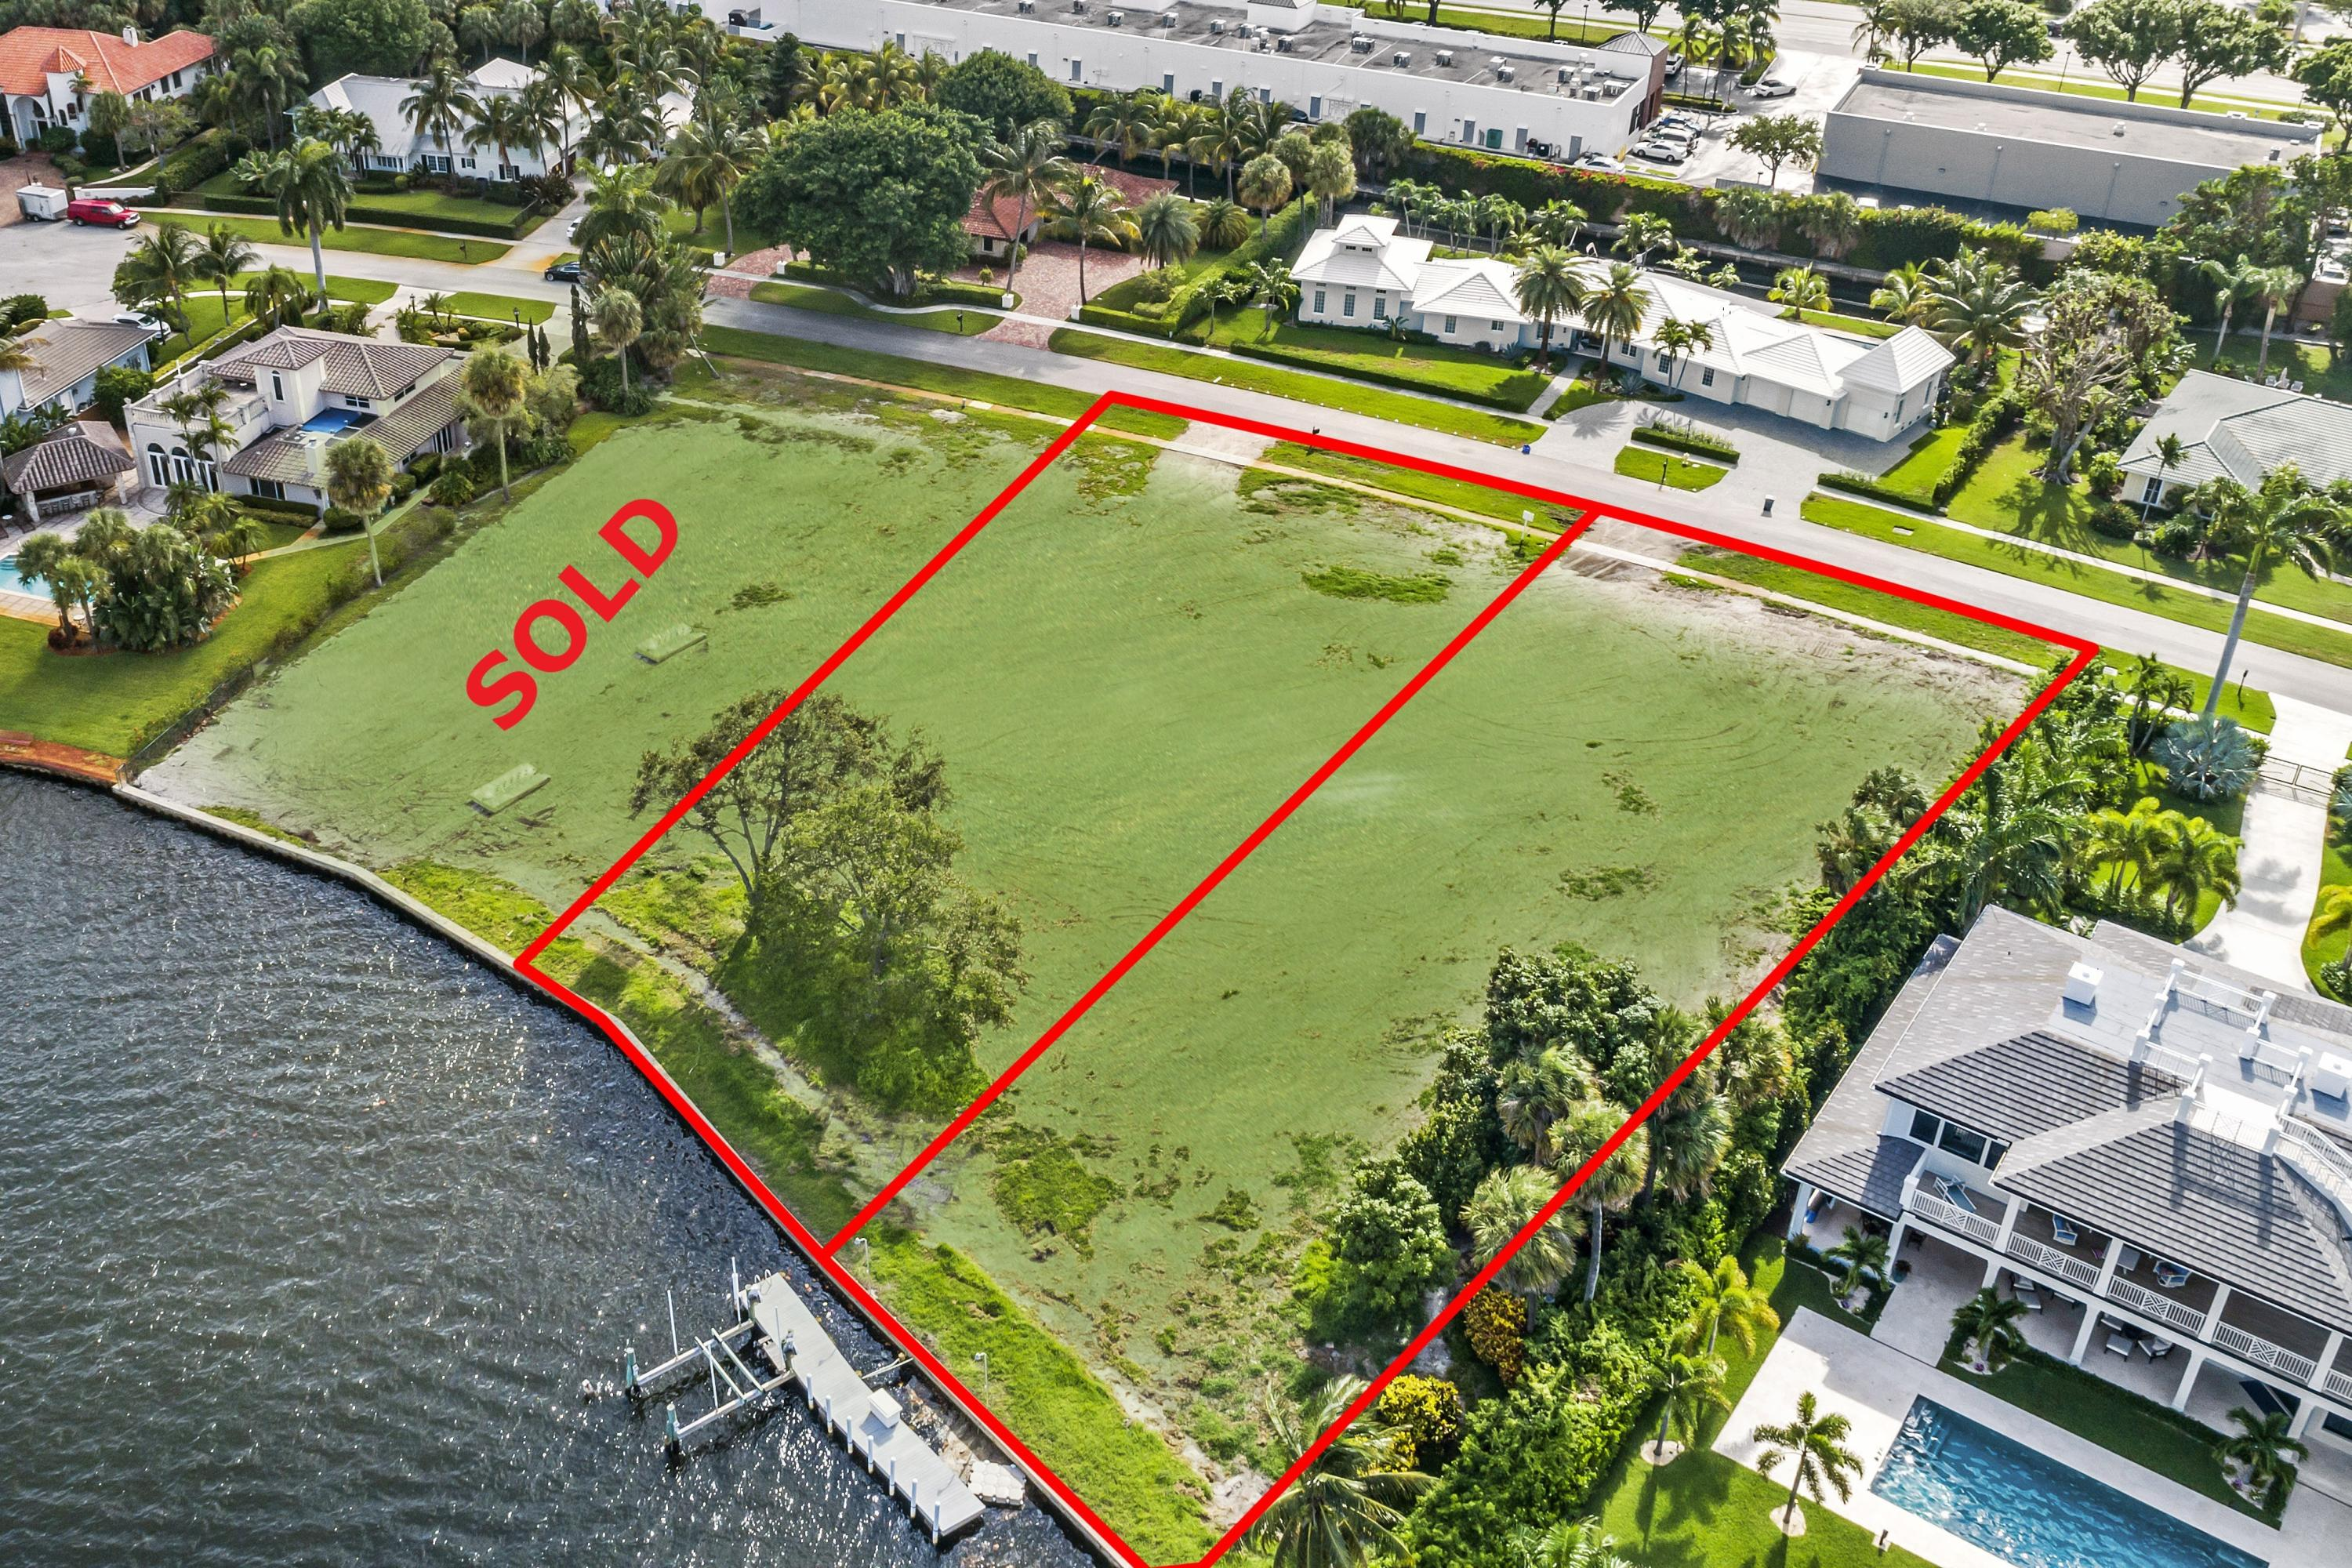 12096 Captains Landing(s), North Palm Beach, Florida 33408, ,C,Single family,Captains,RX-10504767